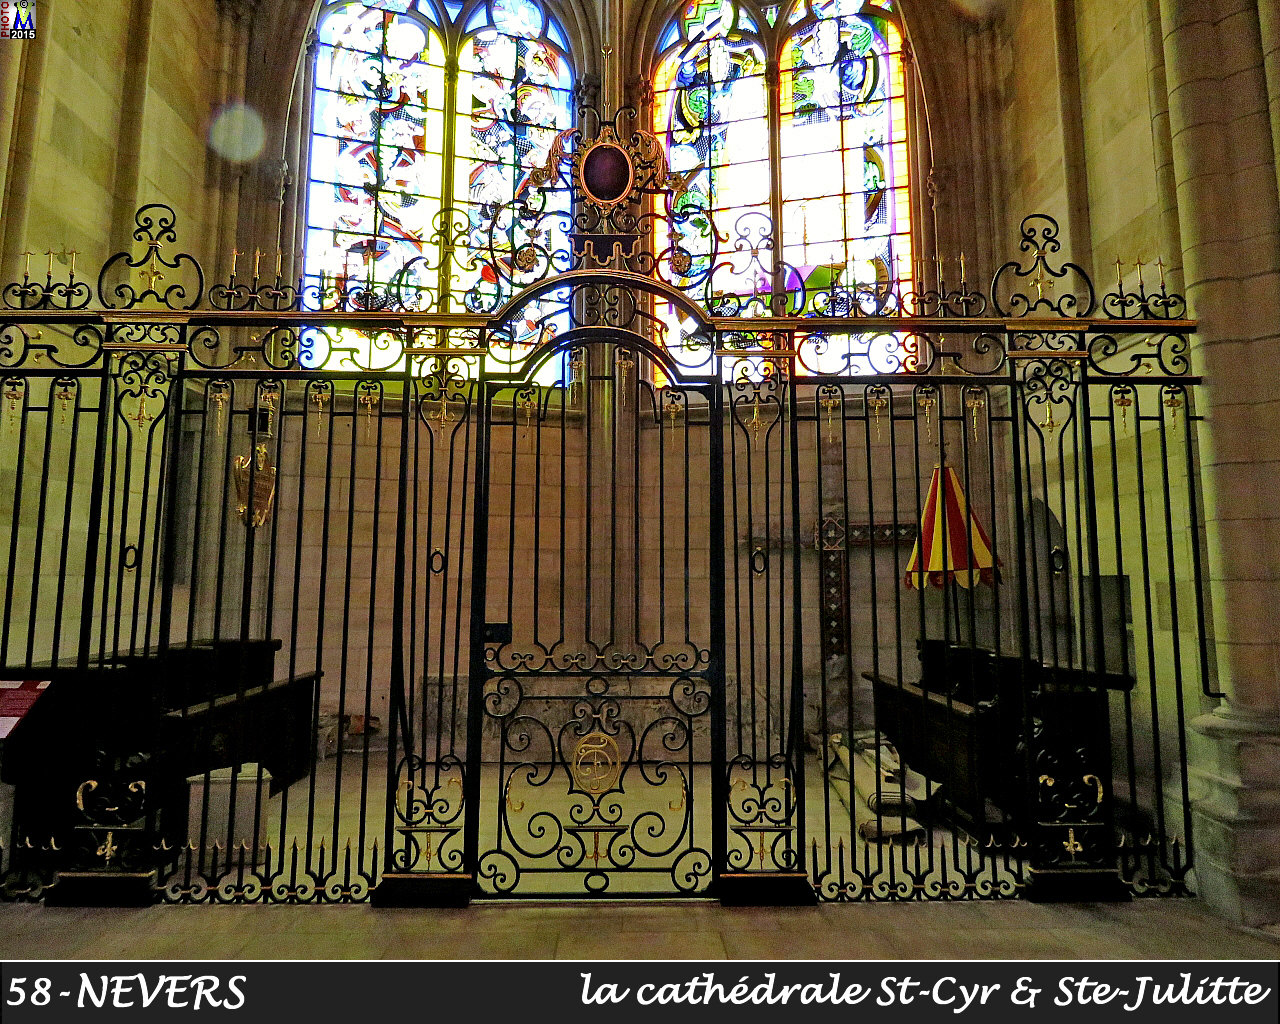 58NEVERS-cathedrale_232.jpg